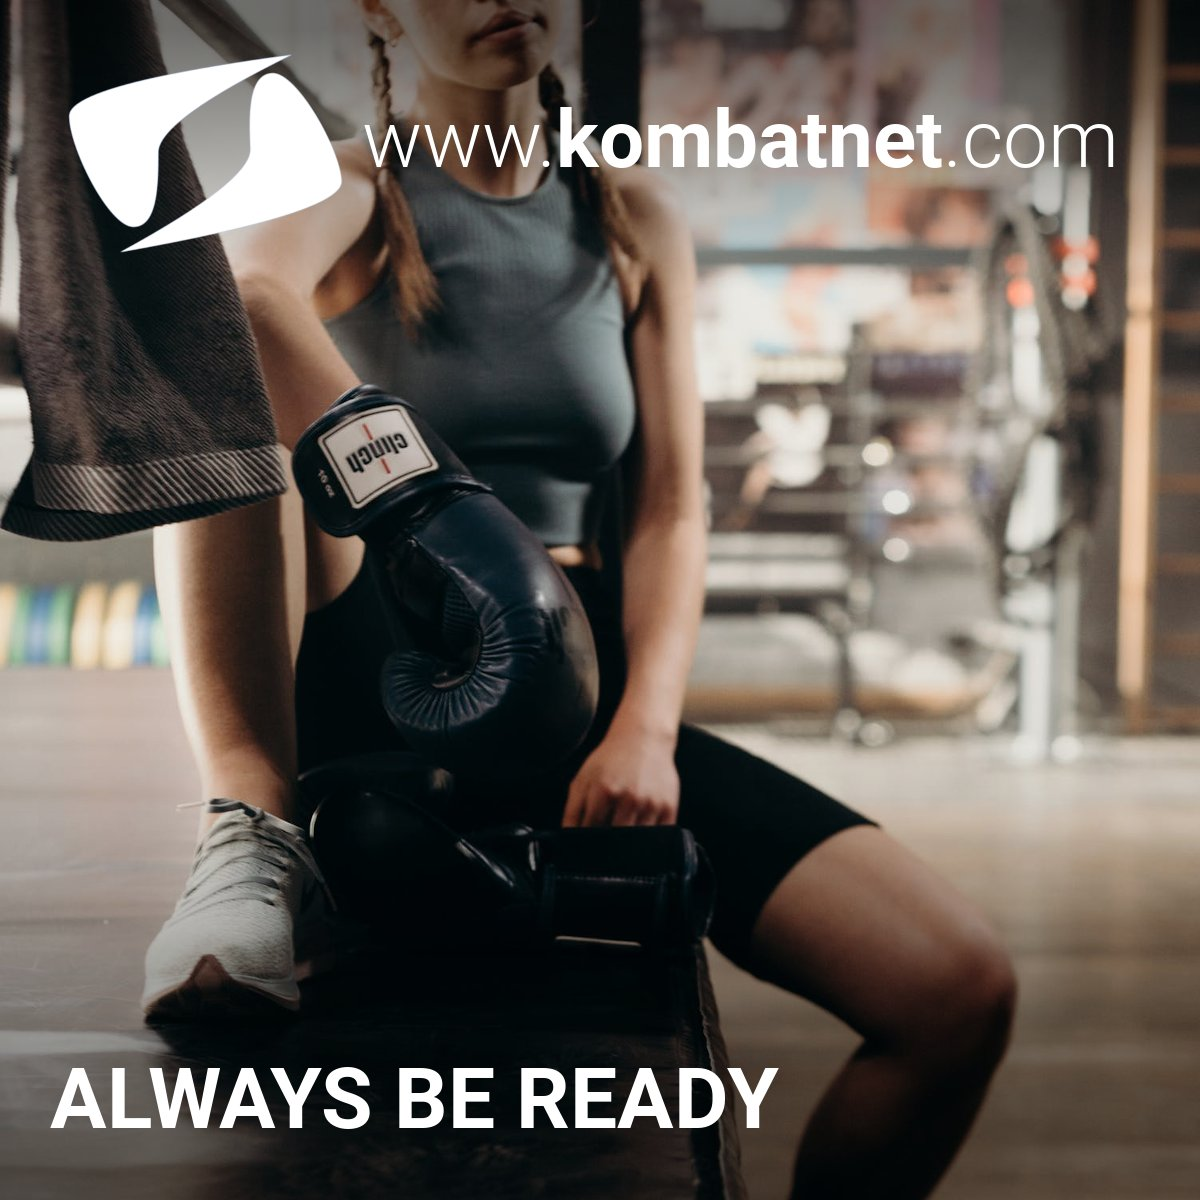 ALWAYS BE READY  https://t.co/5V9xYGWvz6  Social Network for Fighters  #beready #kombatnet #socialnetwork #martialarts #boxing #combatsports #kickboxing #muaythai #savate #sanda #fullcontact #karate #taekwondo #kungfu #aikido #jiujitsu #bjj #mma #pankration #taekwondo #karate https://t.co/SWgvDNSOnk